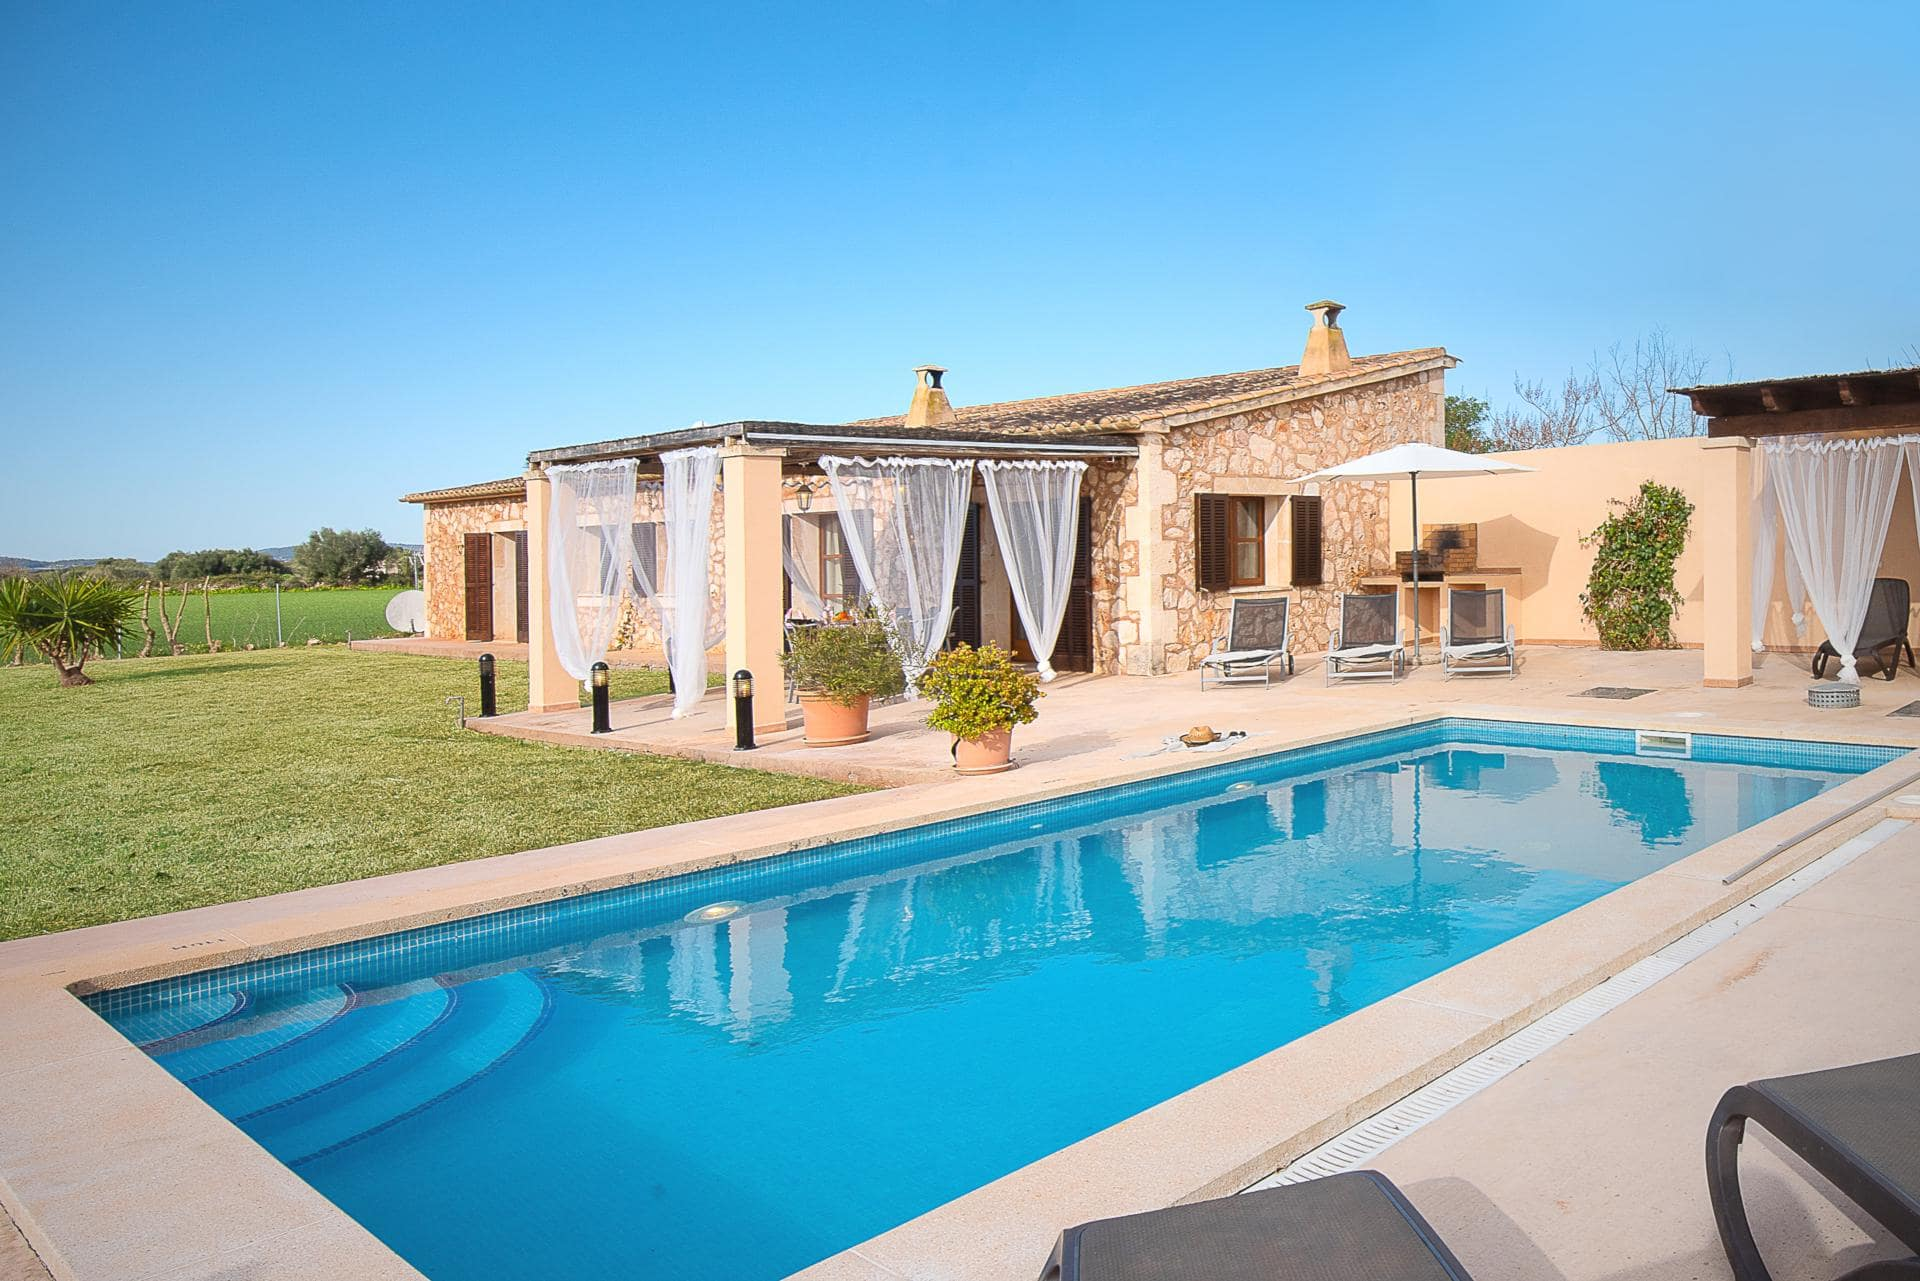 Stay at the beautiful Sa Figuera on Mallorca's south-eastern coast